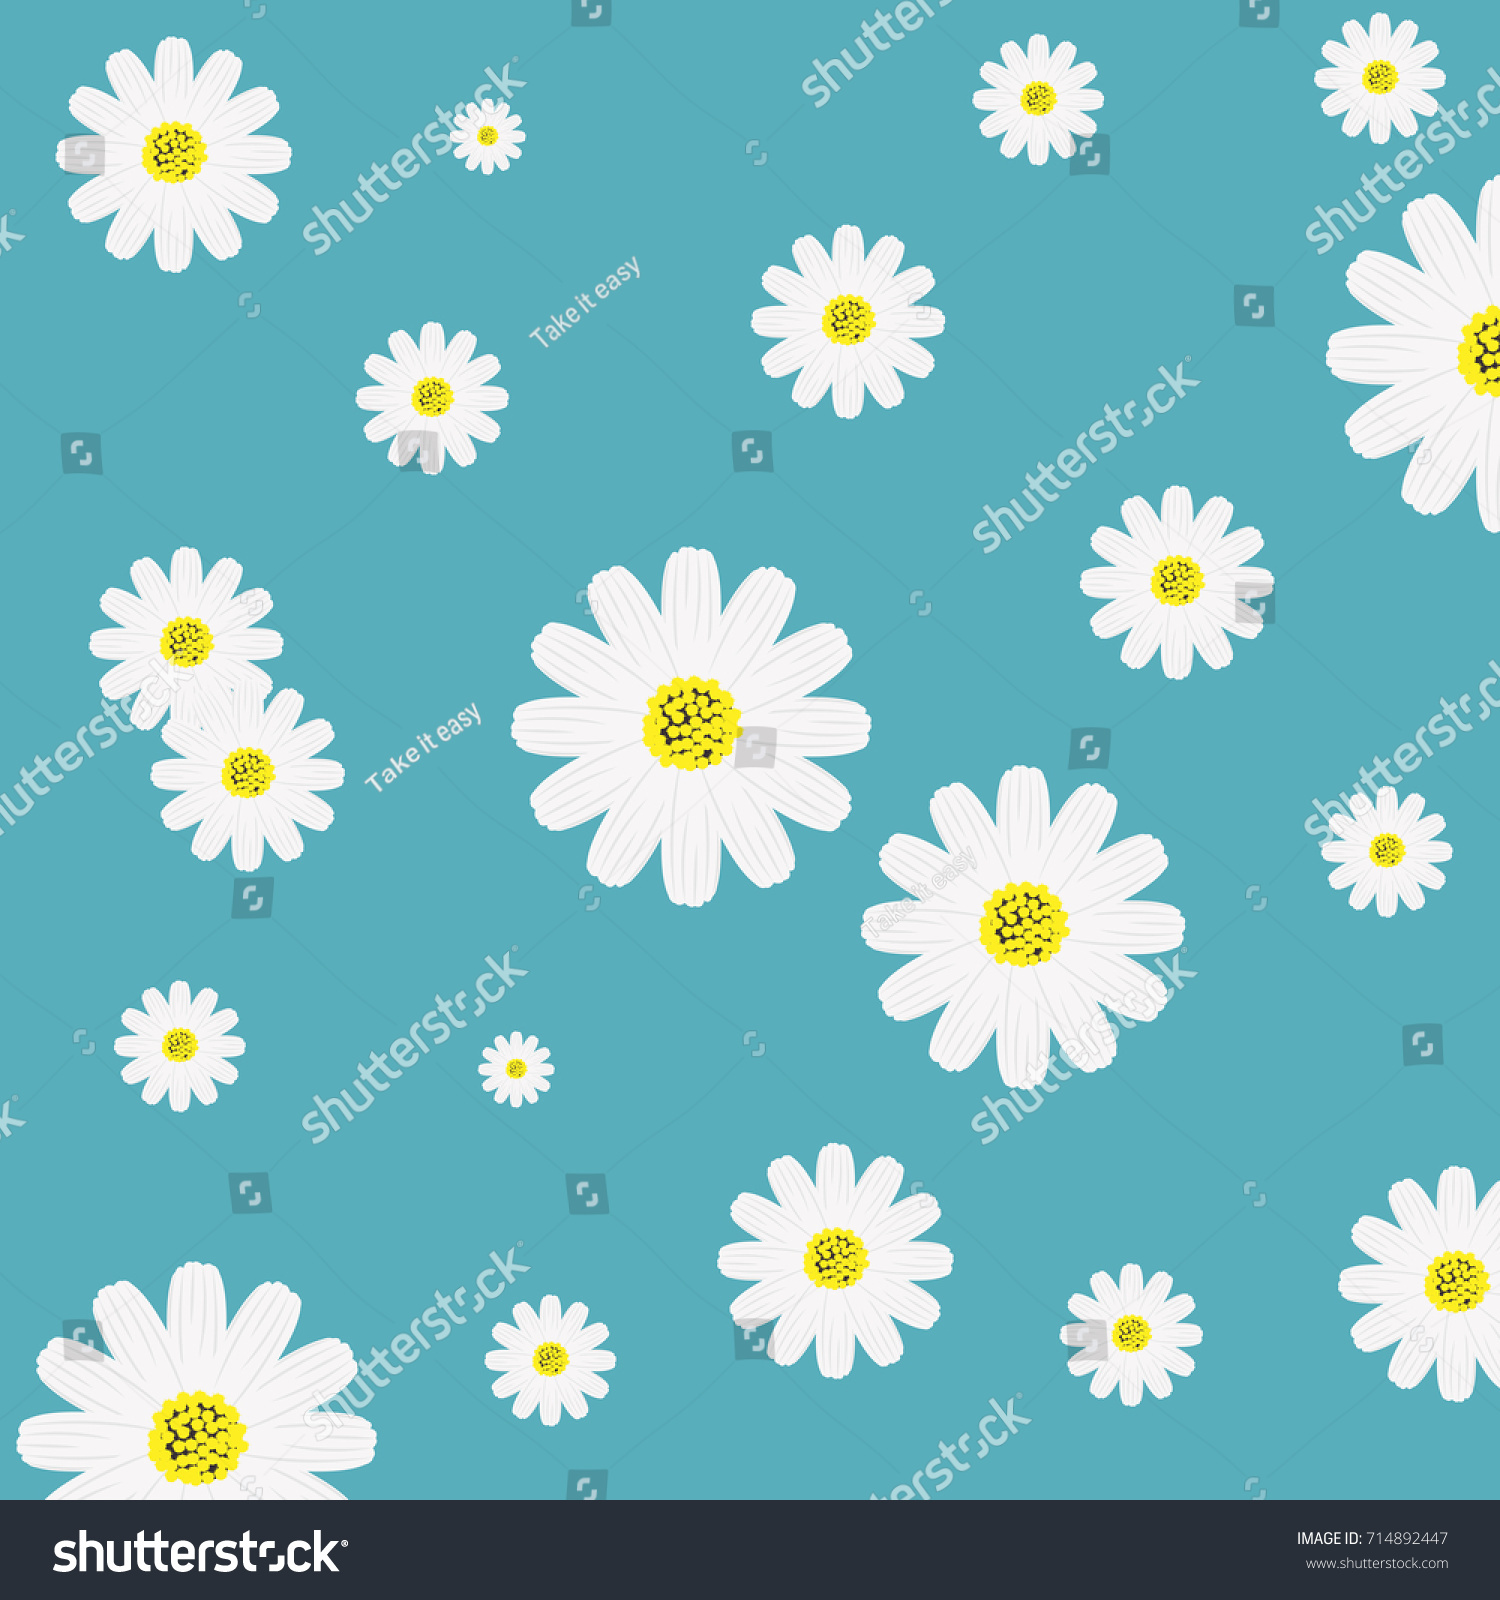 White Daisy Flower Background Vintage Design Stock Vector Royalty